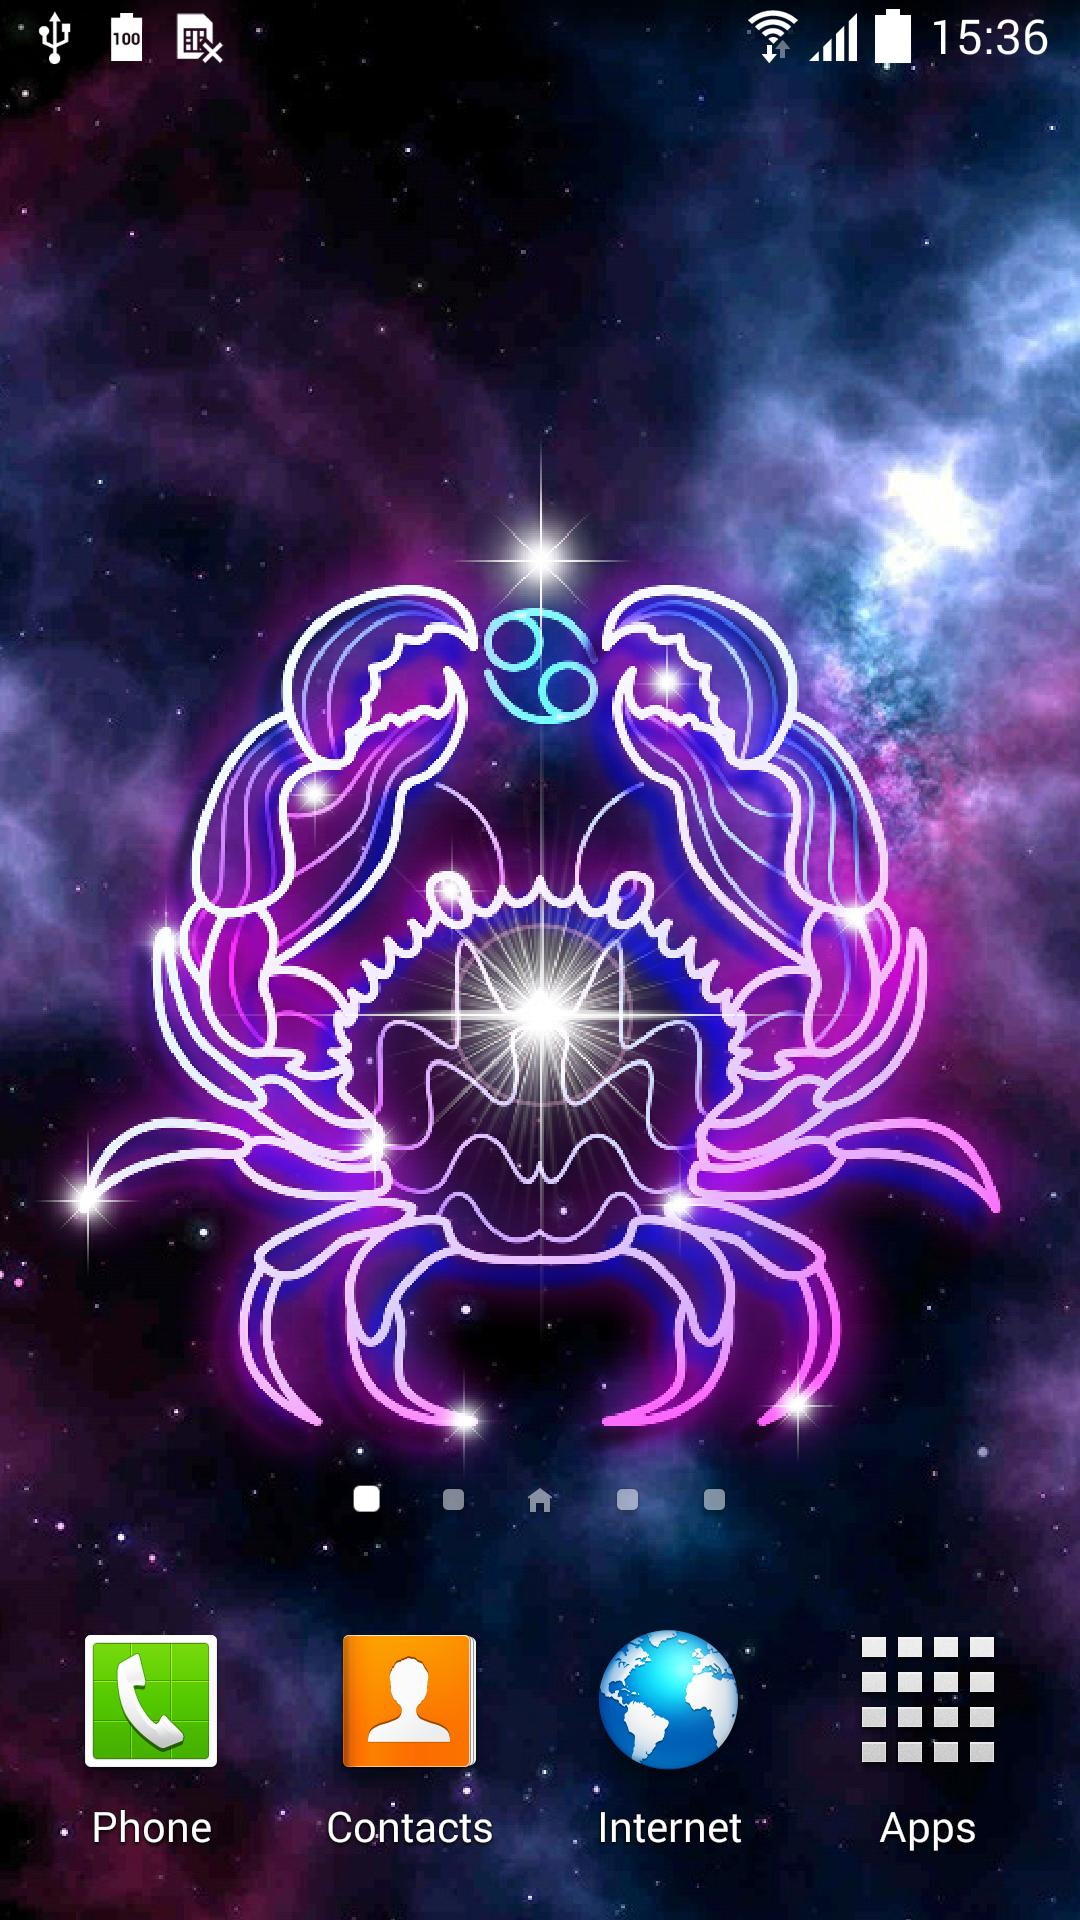 Zodiac Signs Live Wallpaper For Android Apk Download